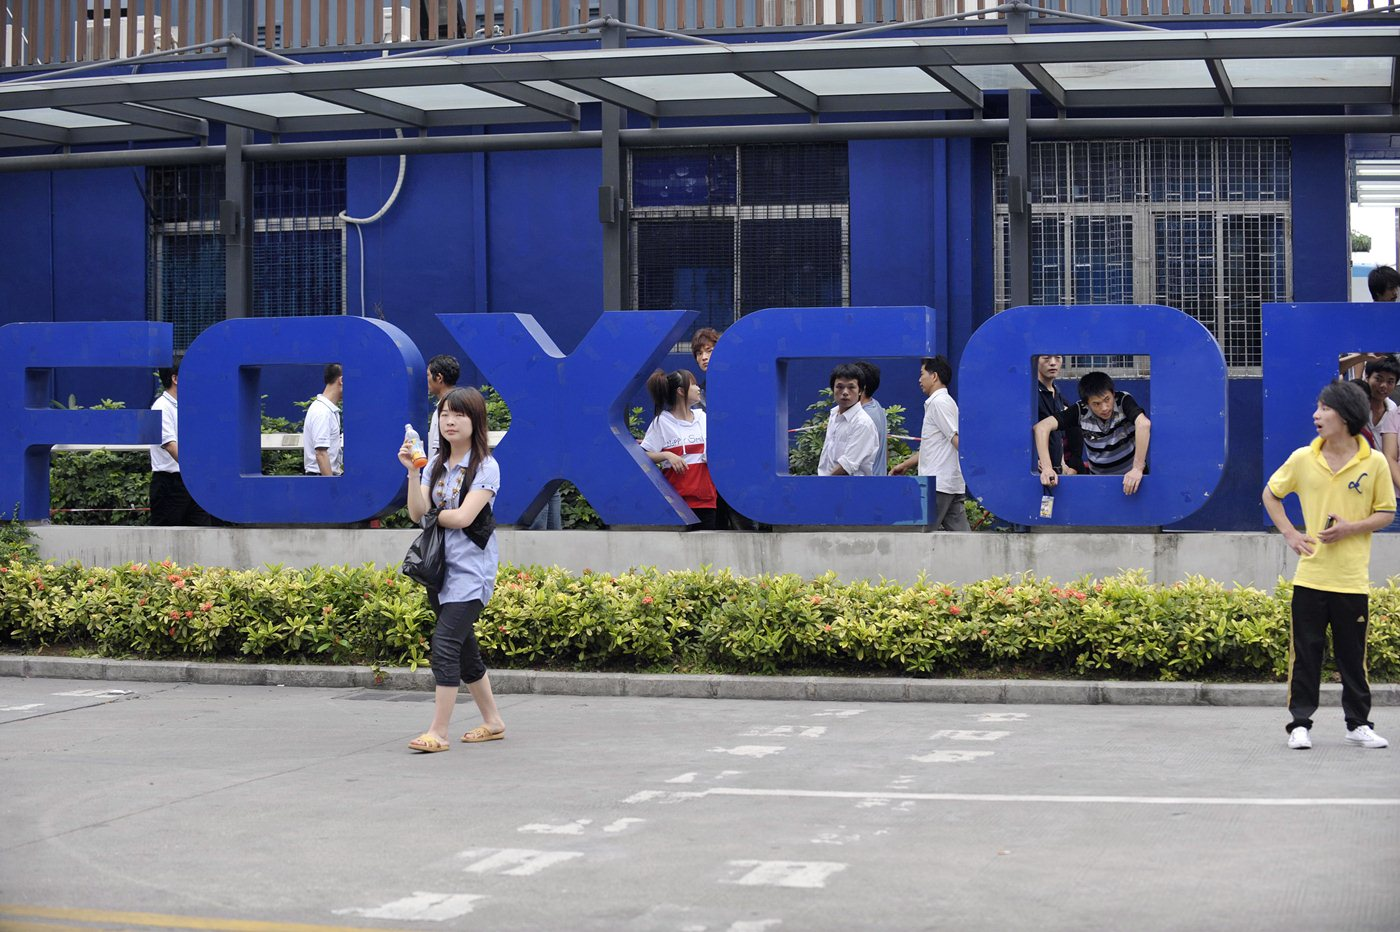 Foxconn admits it breached Chinese labor laws by hiring 14-year-old interns